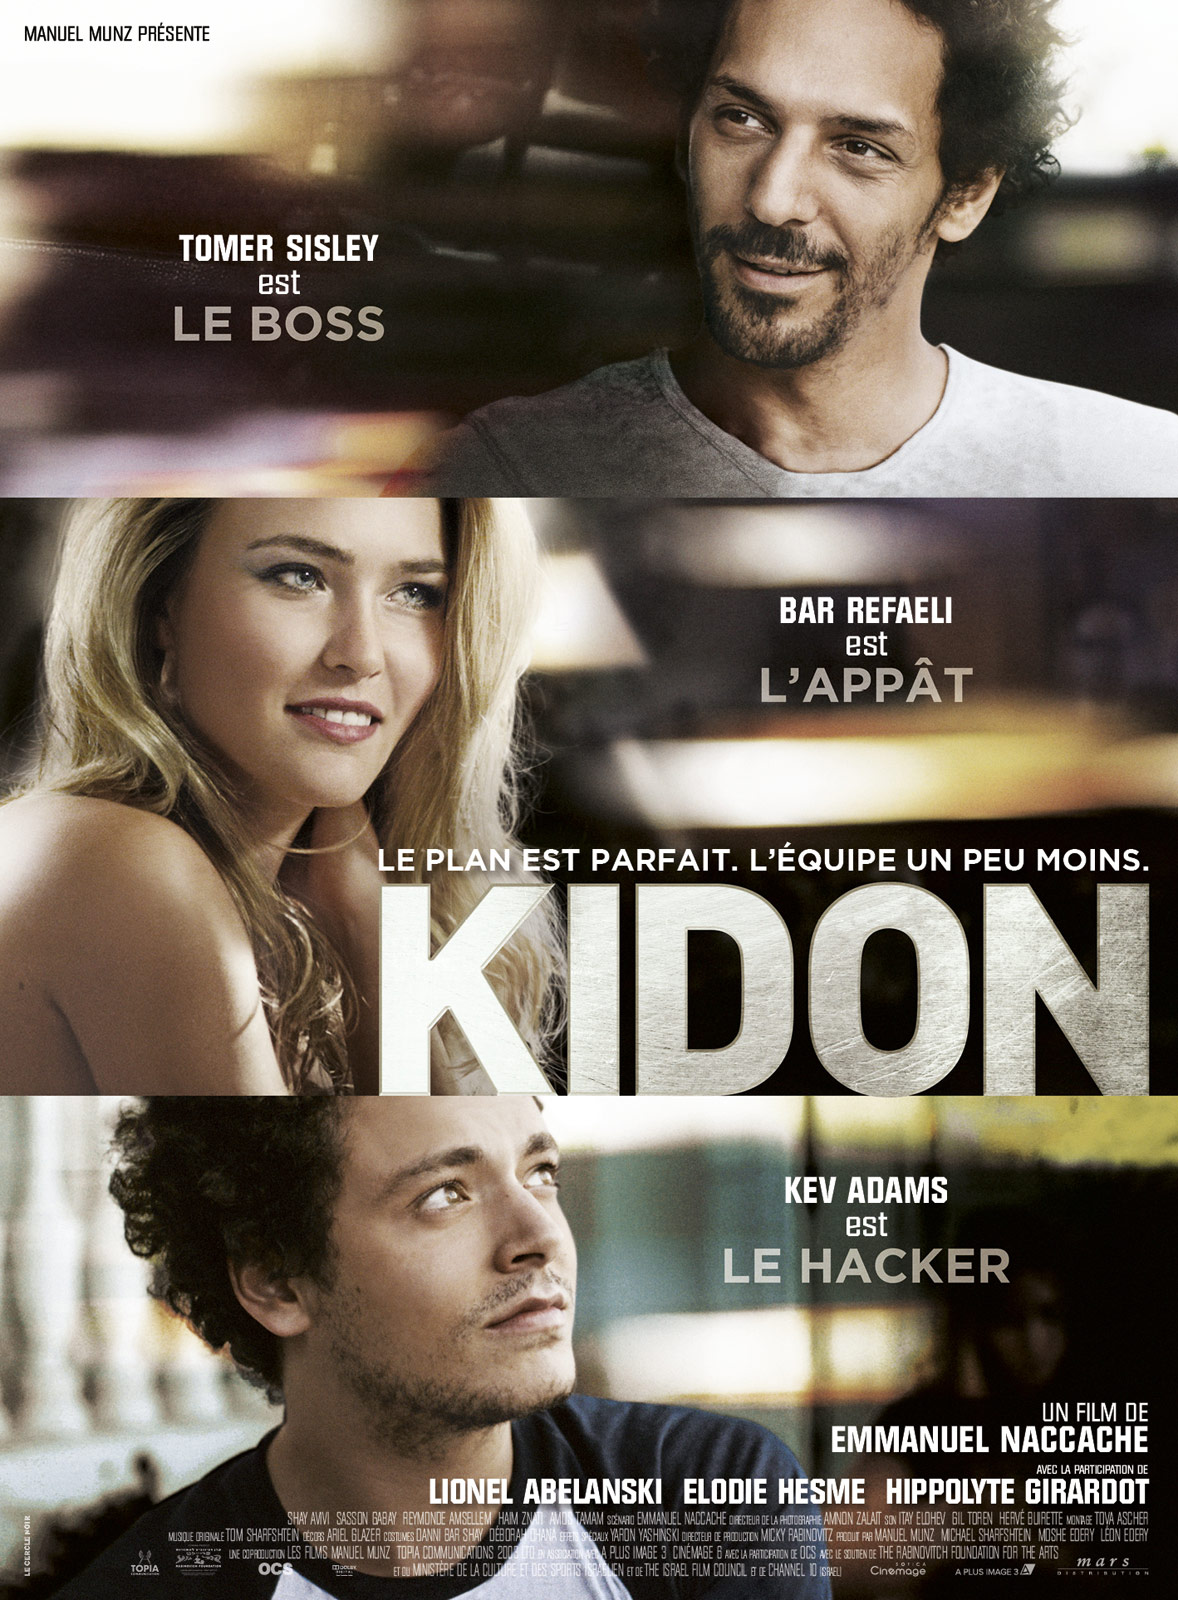 Telecharger Kidon  FRENCH DVDRIP Gratuitement